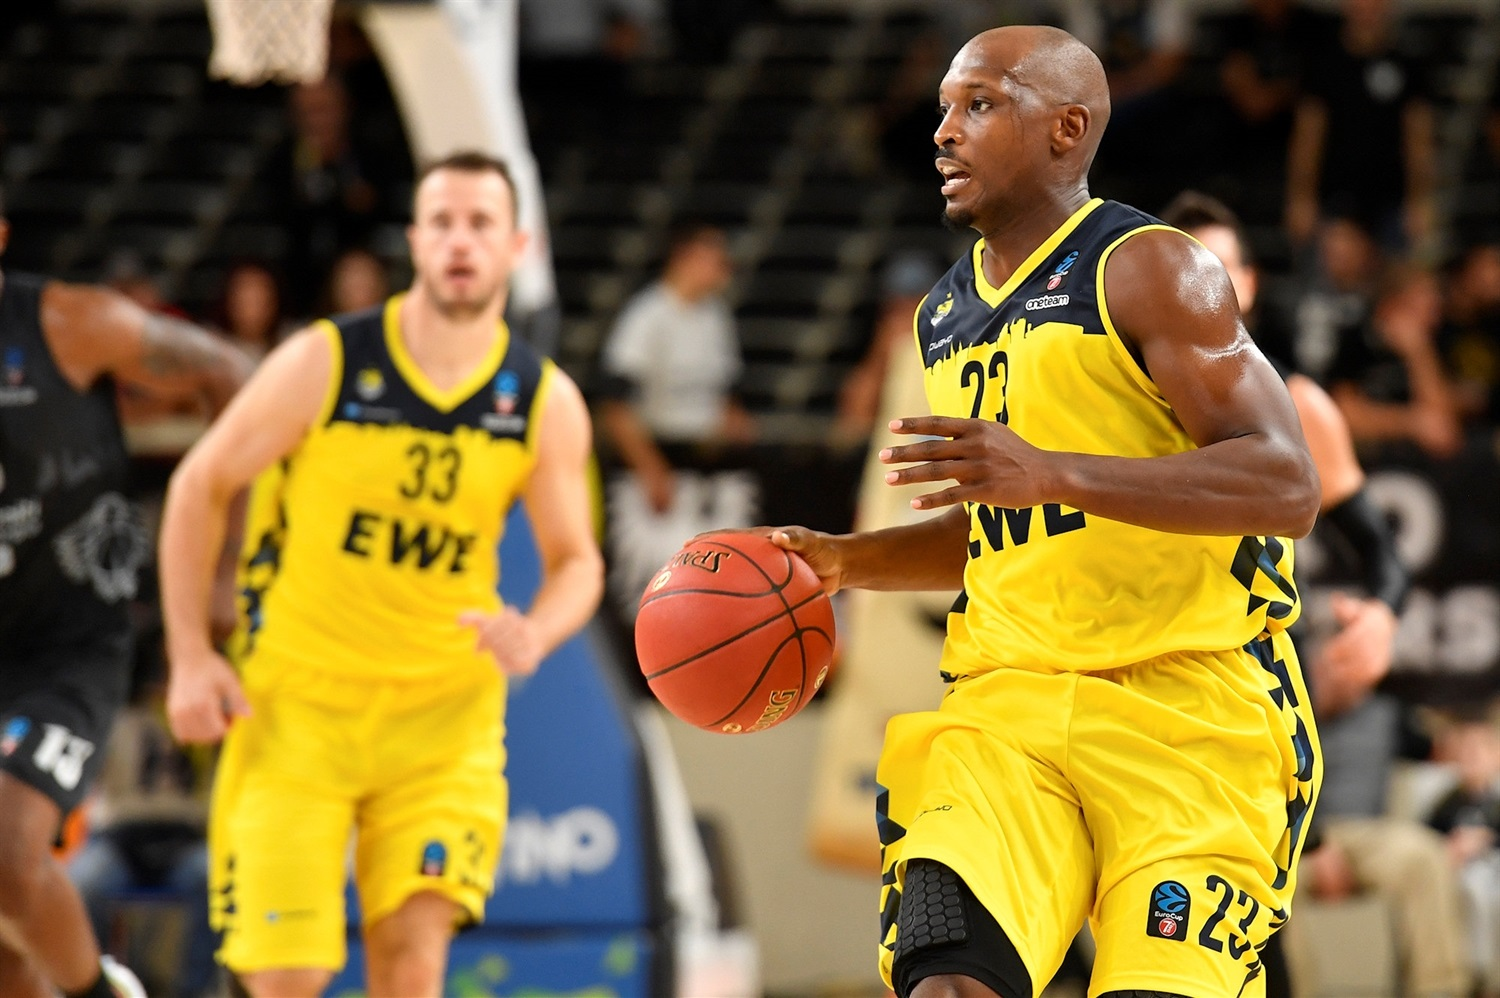 Rickey Paulding - EWE Baskets Oldenburg (photo Trento) - EC19